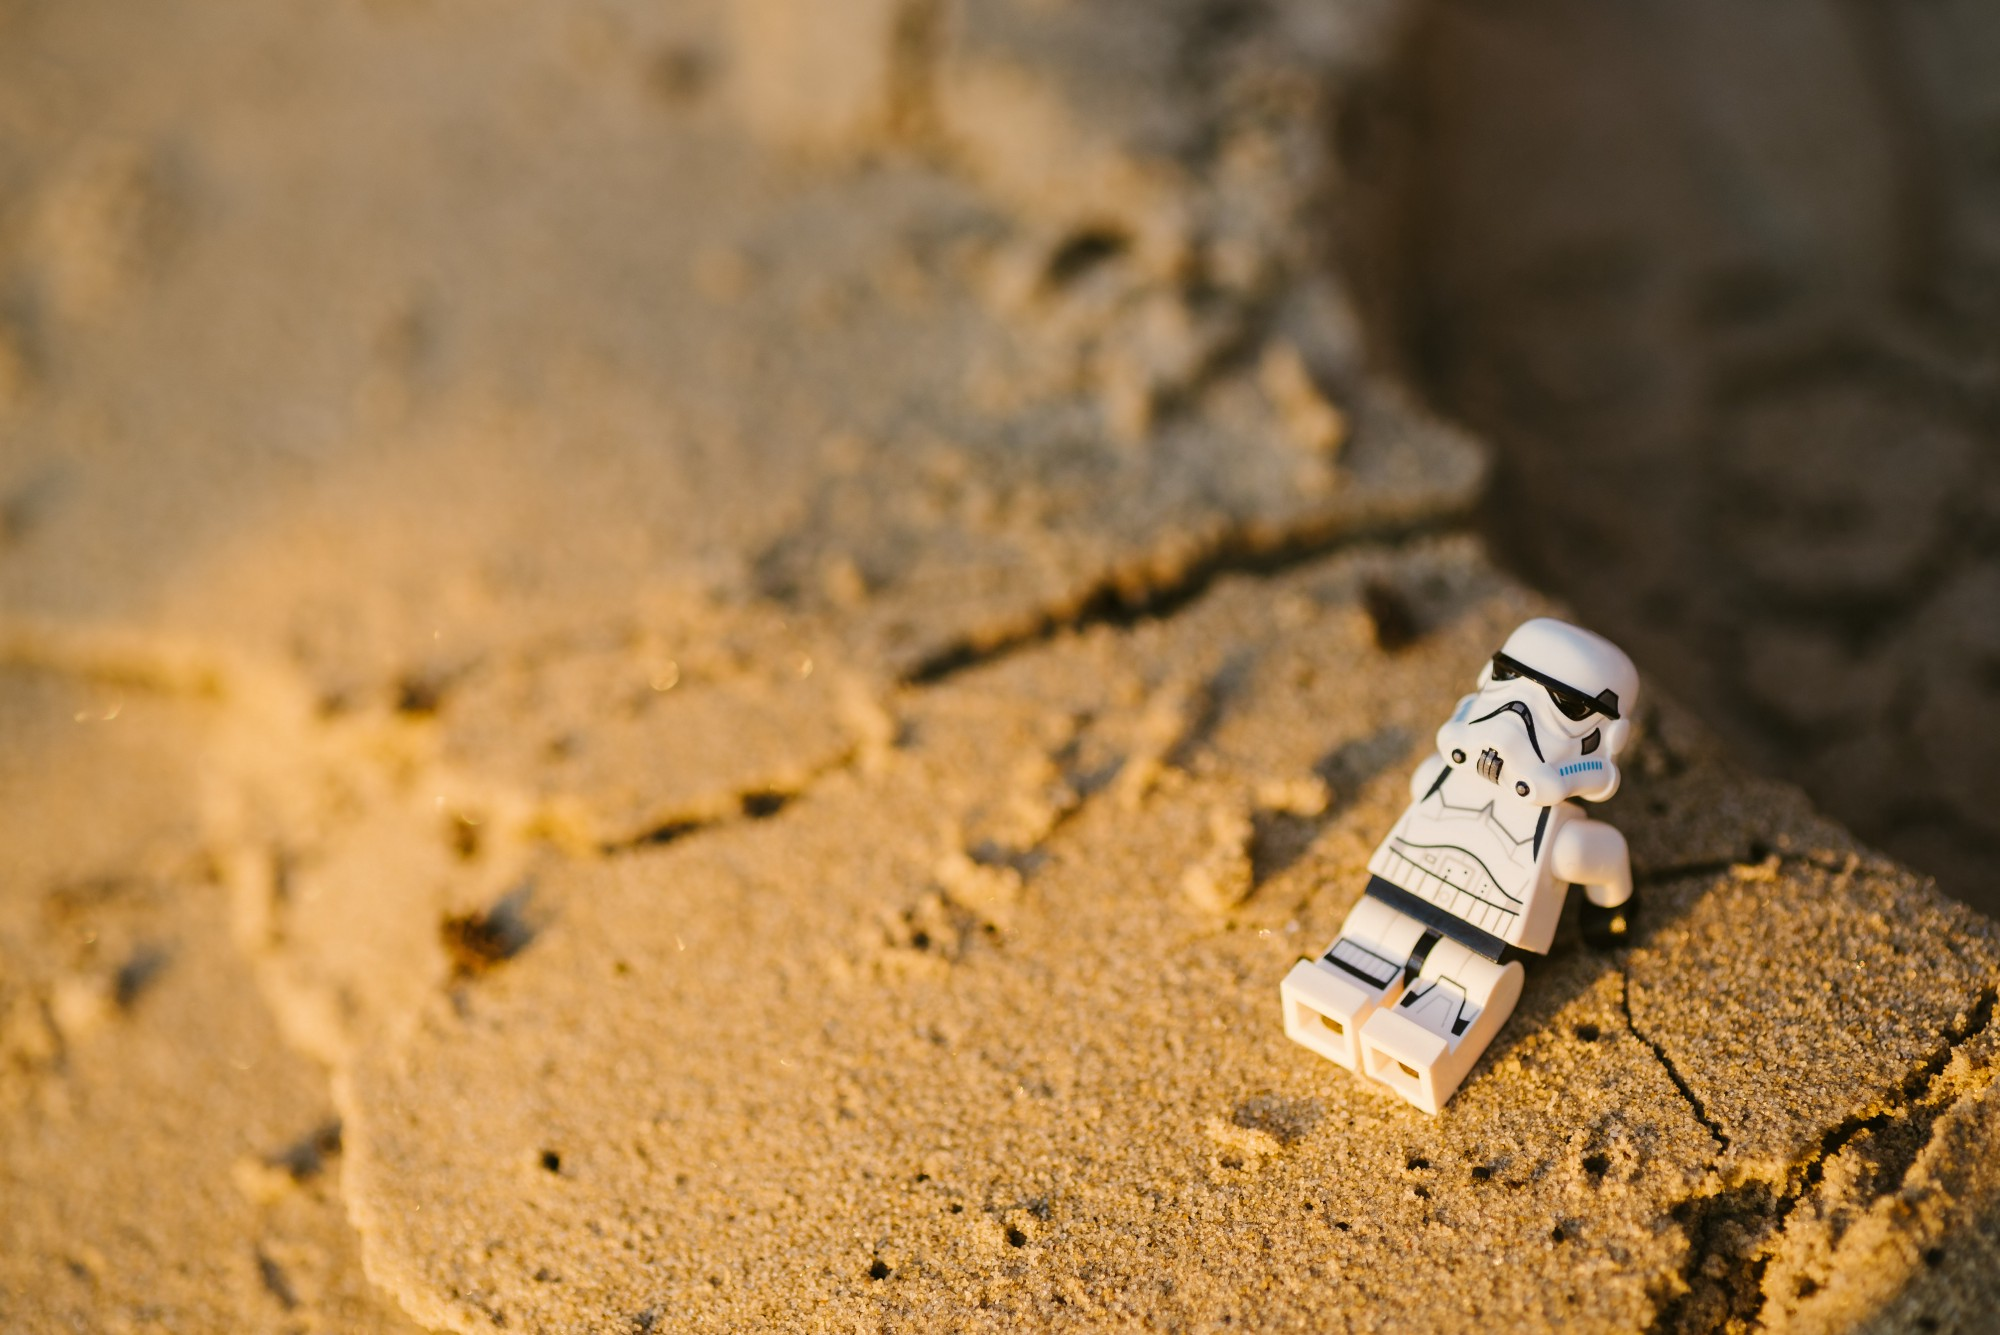 Lego storm trooper sitting in the sand while contemplating life.